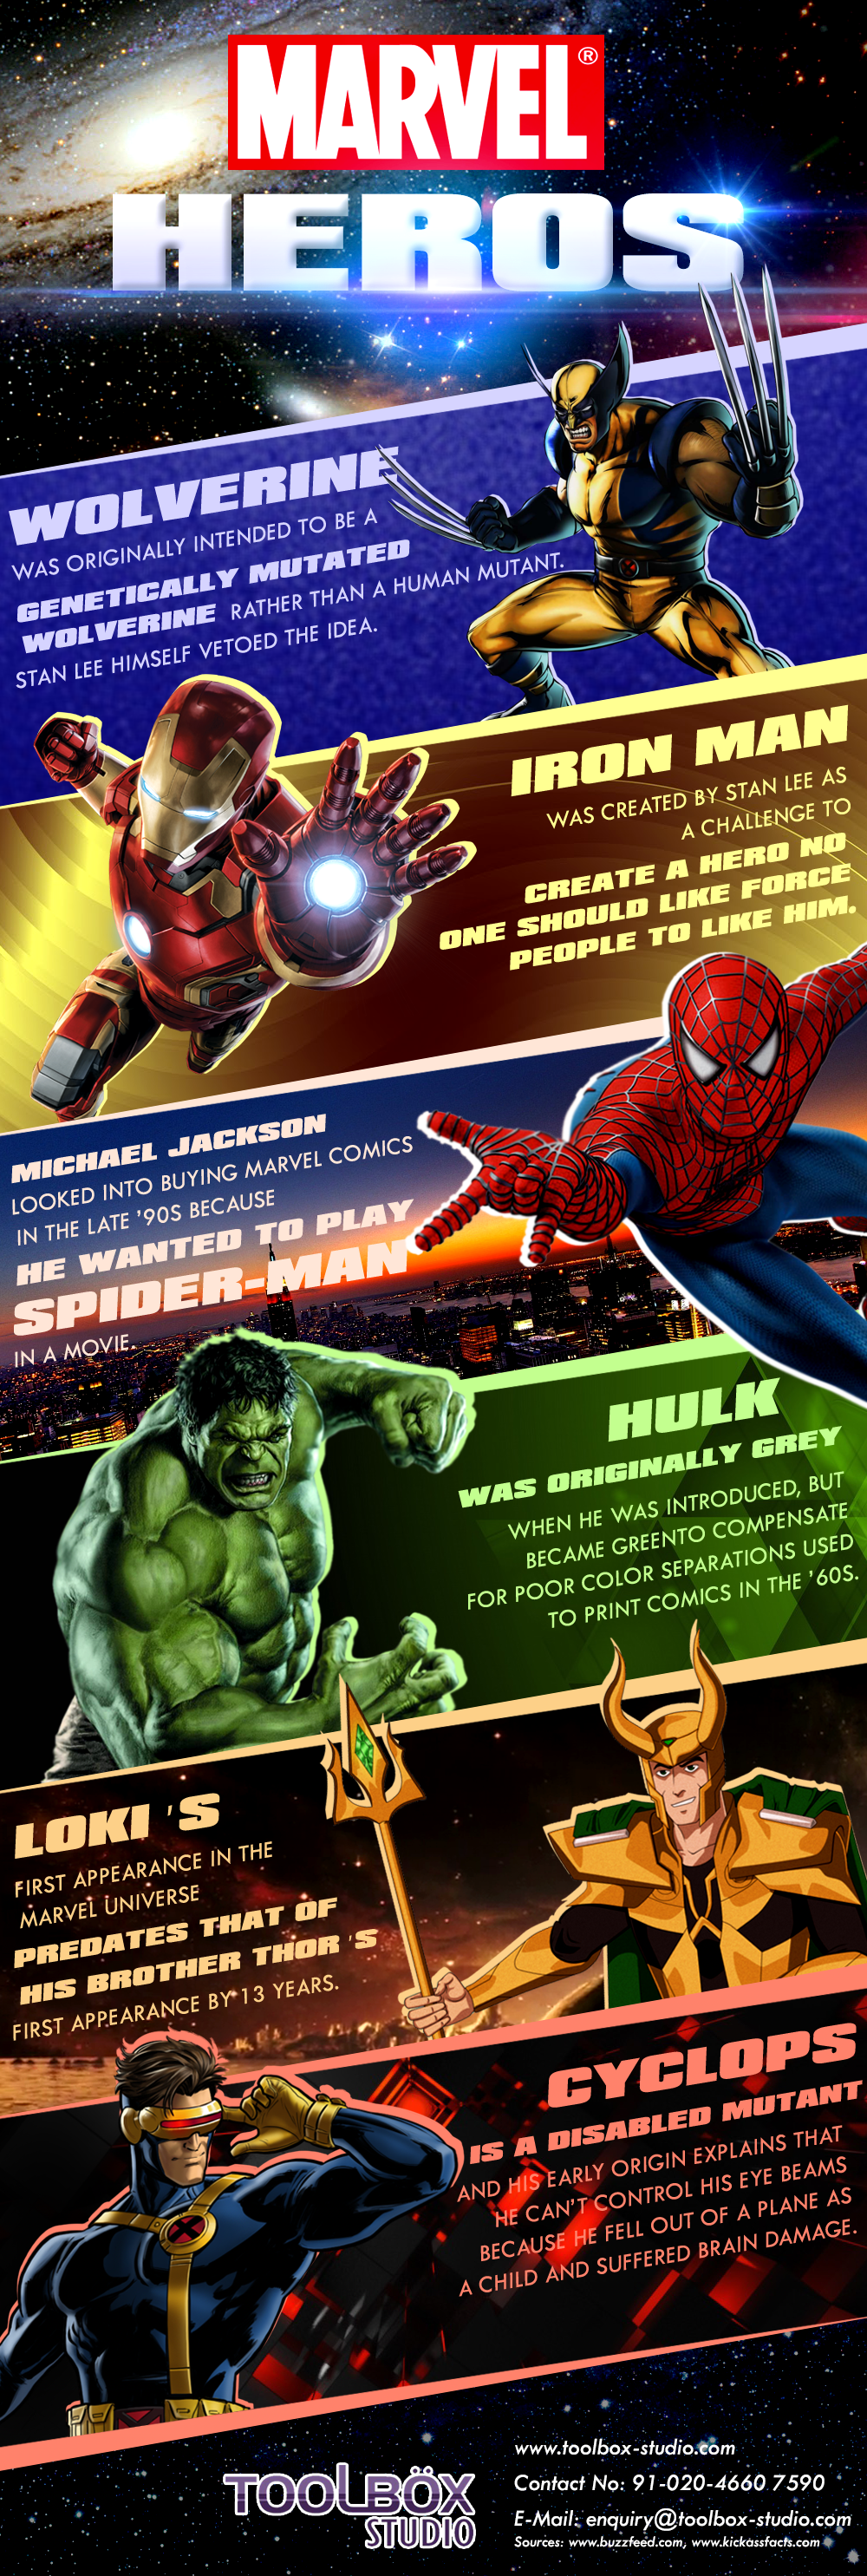 Facts about the Marvel Heros!